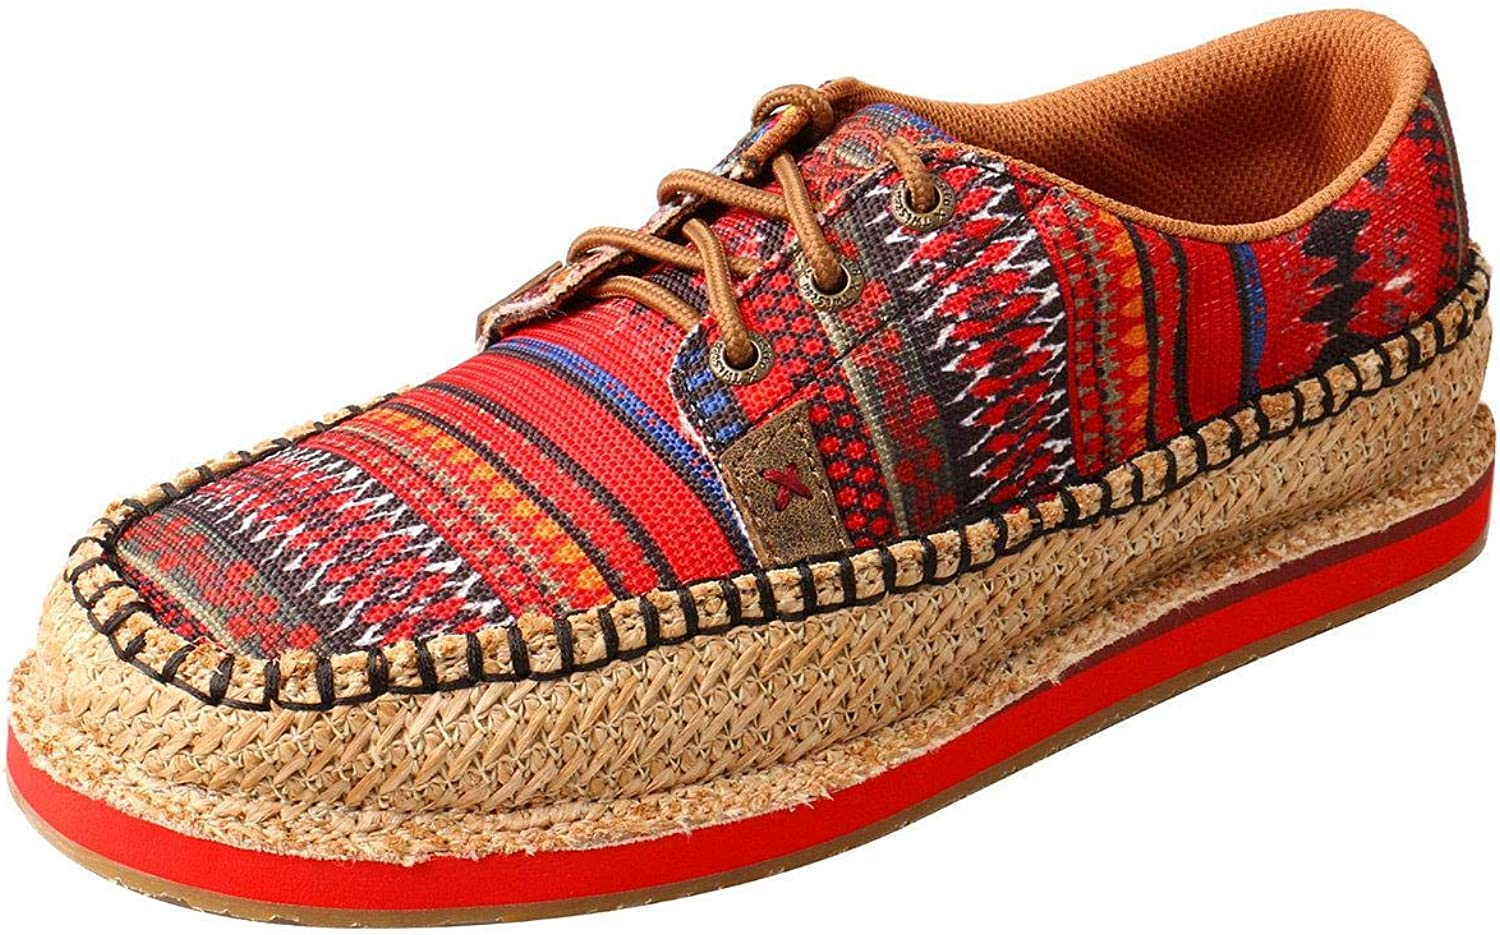 Twisted X Women's Weave Moccasin shoes Moc Toe